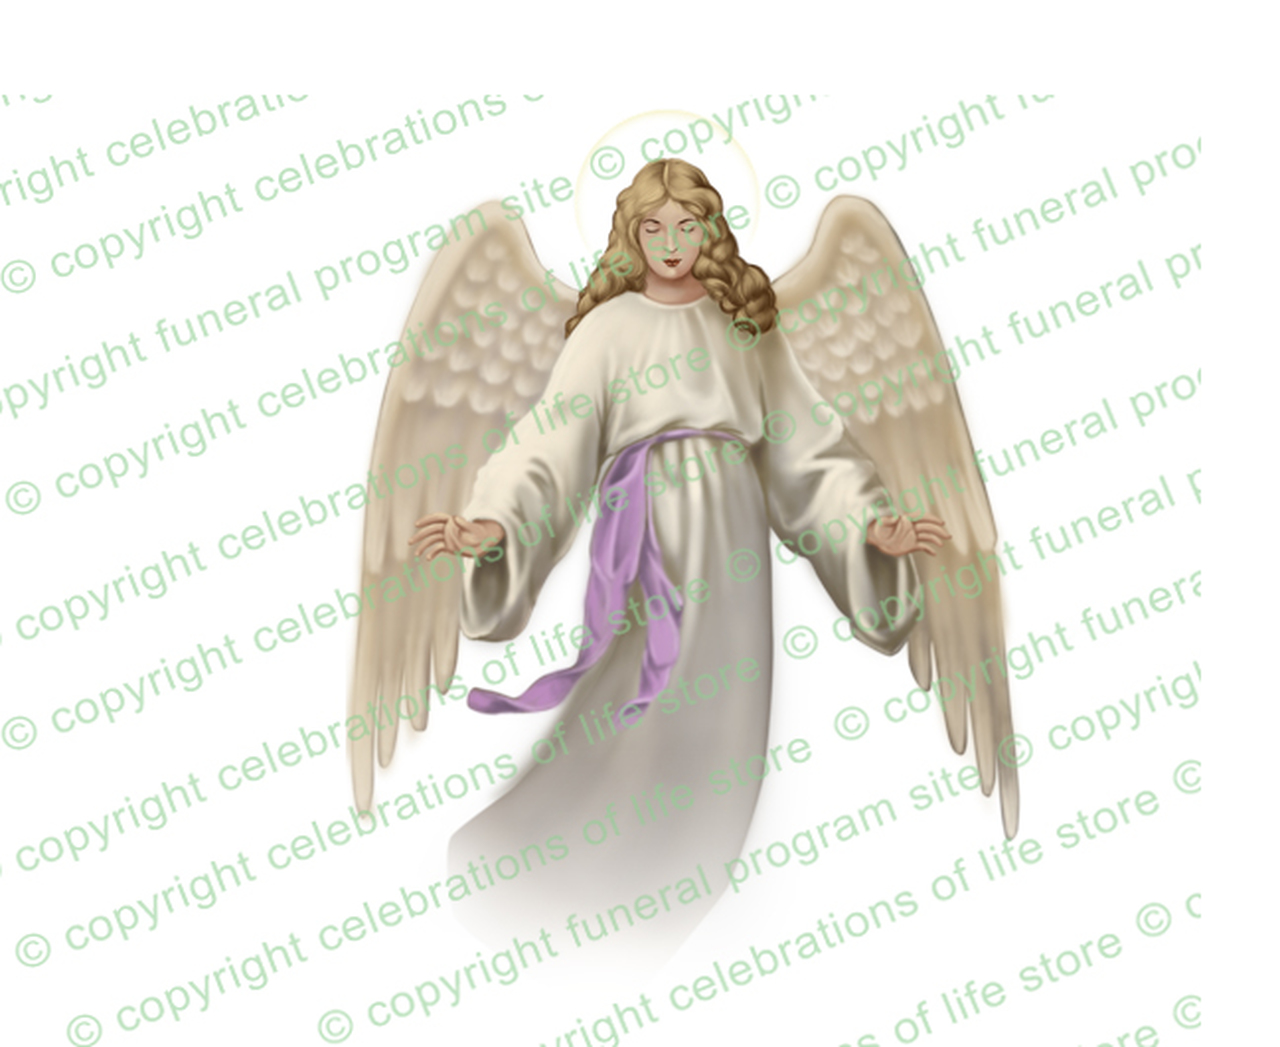 Angels joyous celebration clipart vector royalty free Holy Angel Vector Clip Art (Light/Dark Skin) vector royalty free